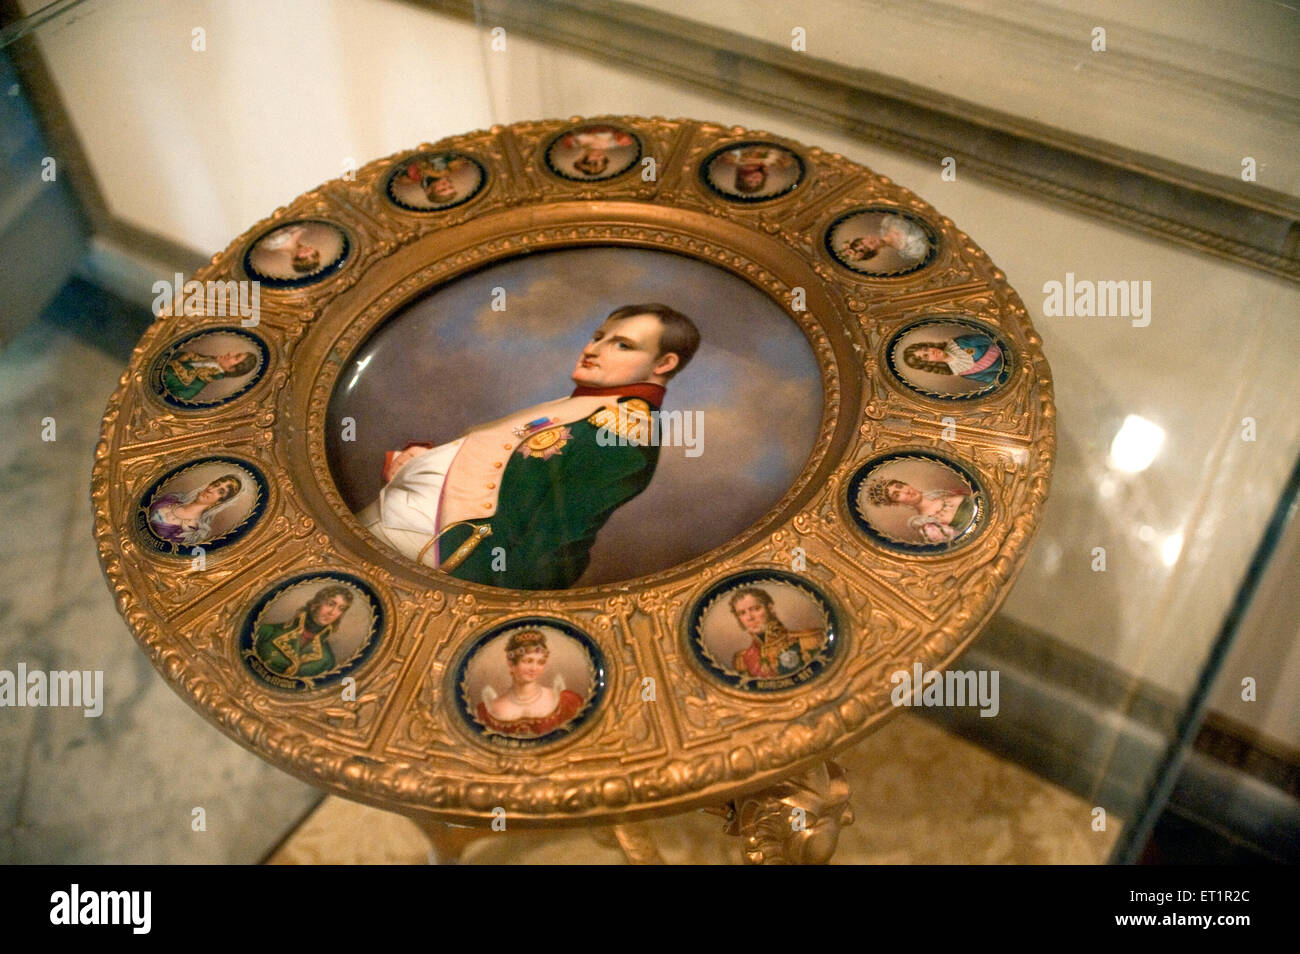 Napoleons painting on disk in scindia museum in jaivilas palace ; Gwalior ; Madhya Pradesh ; India - Stock Image